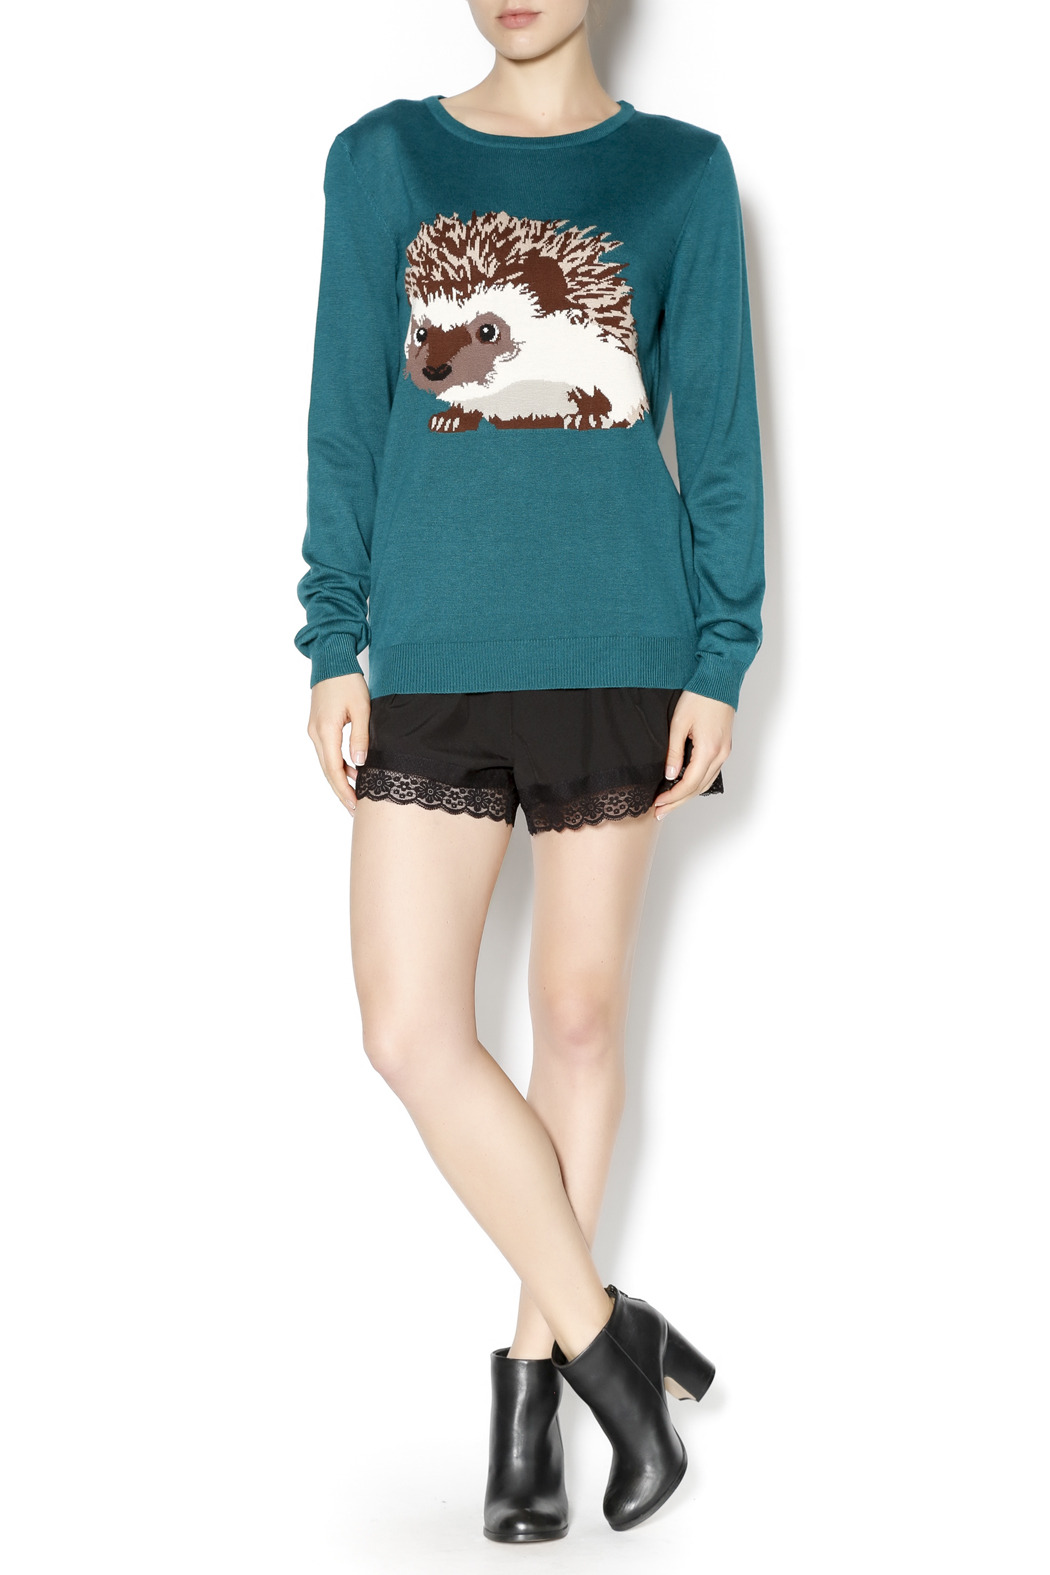 Hedgehog Christmas Jumper.Sugarhill Boutique Hedgehog Sweater From Indiana By Ivy